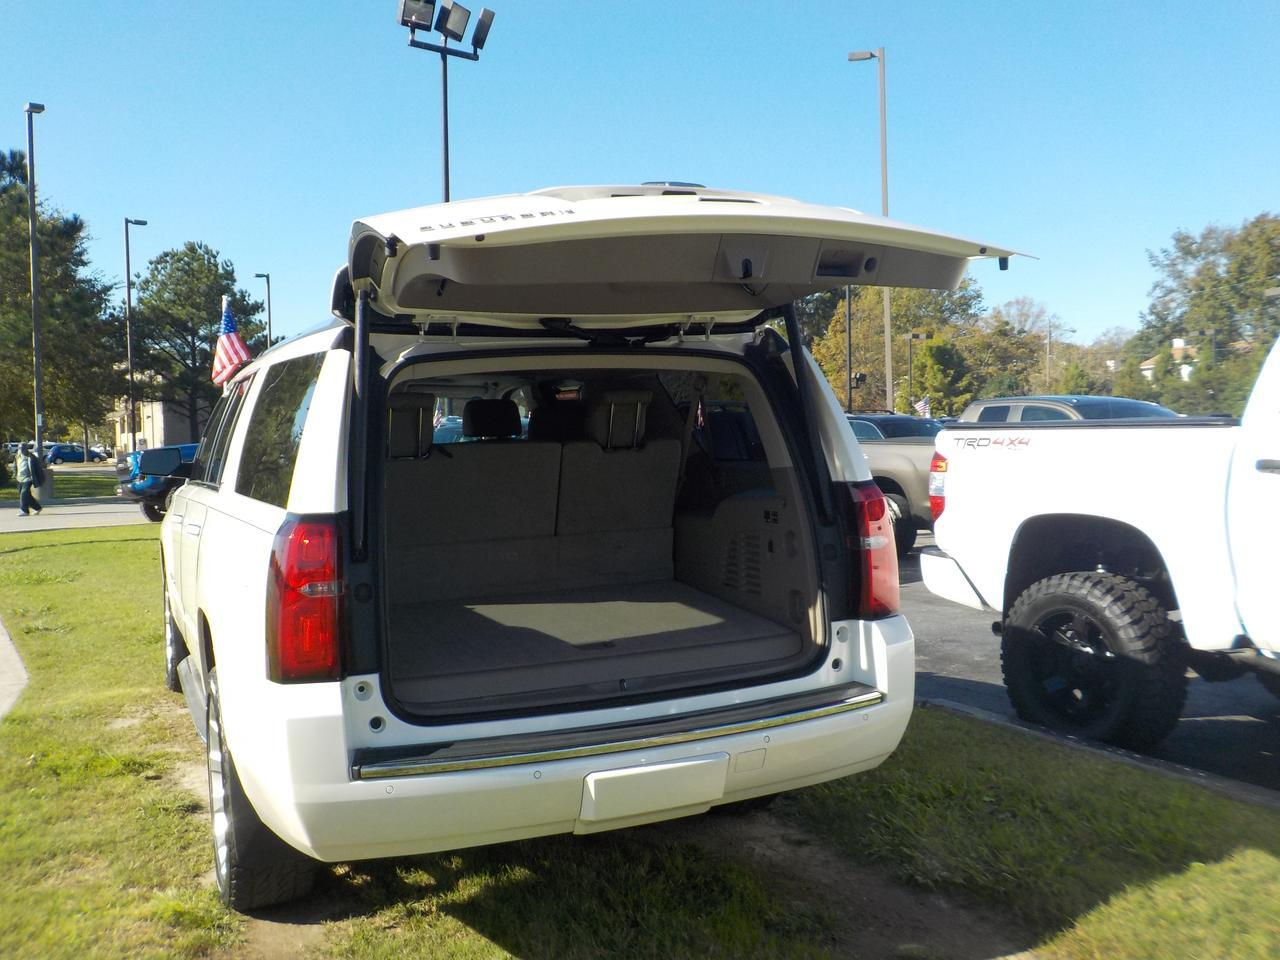 2015 CHEVROLET SUBURBAN LTZ 4X4, ONE OWNER, LOADED, LEATHER HEATED SEATS, NAVI, BOSE PREMIUM SOUND, SUNROOF, ONLY 72K MILES! Virginia Beach VA